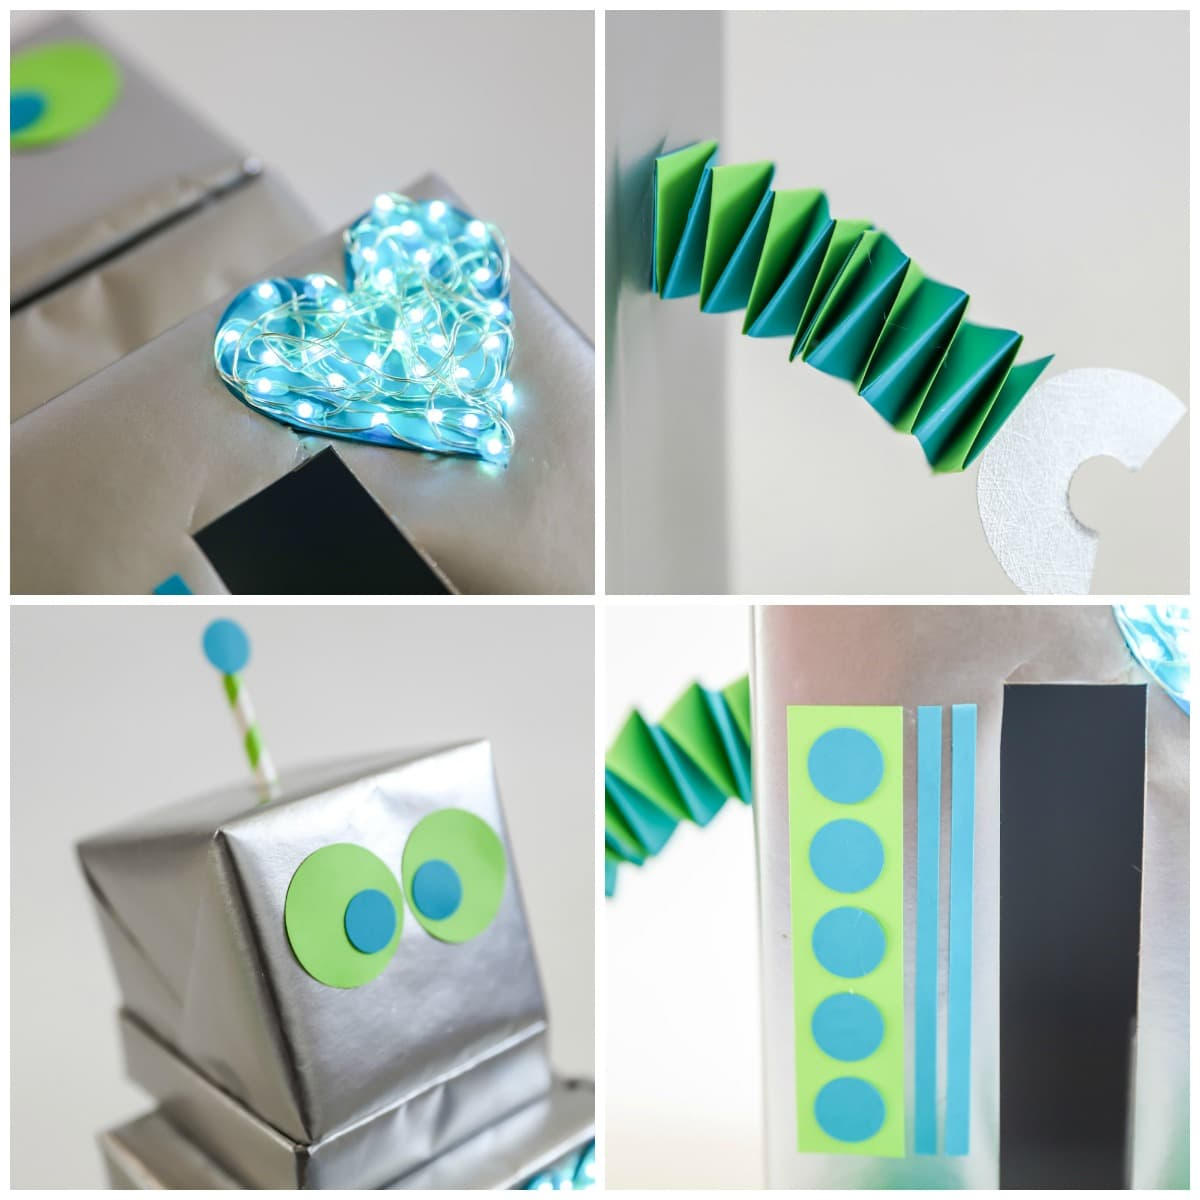 How to Make Robot Valentine Box